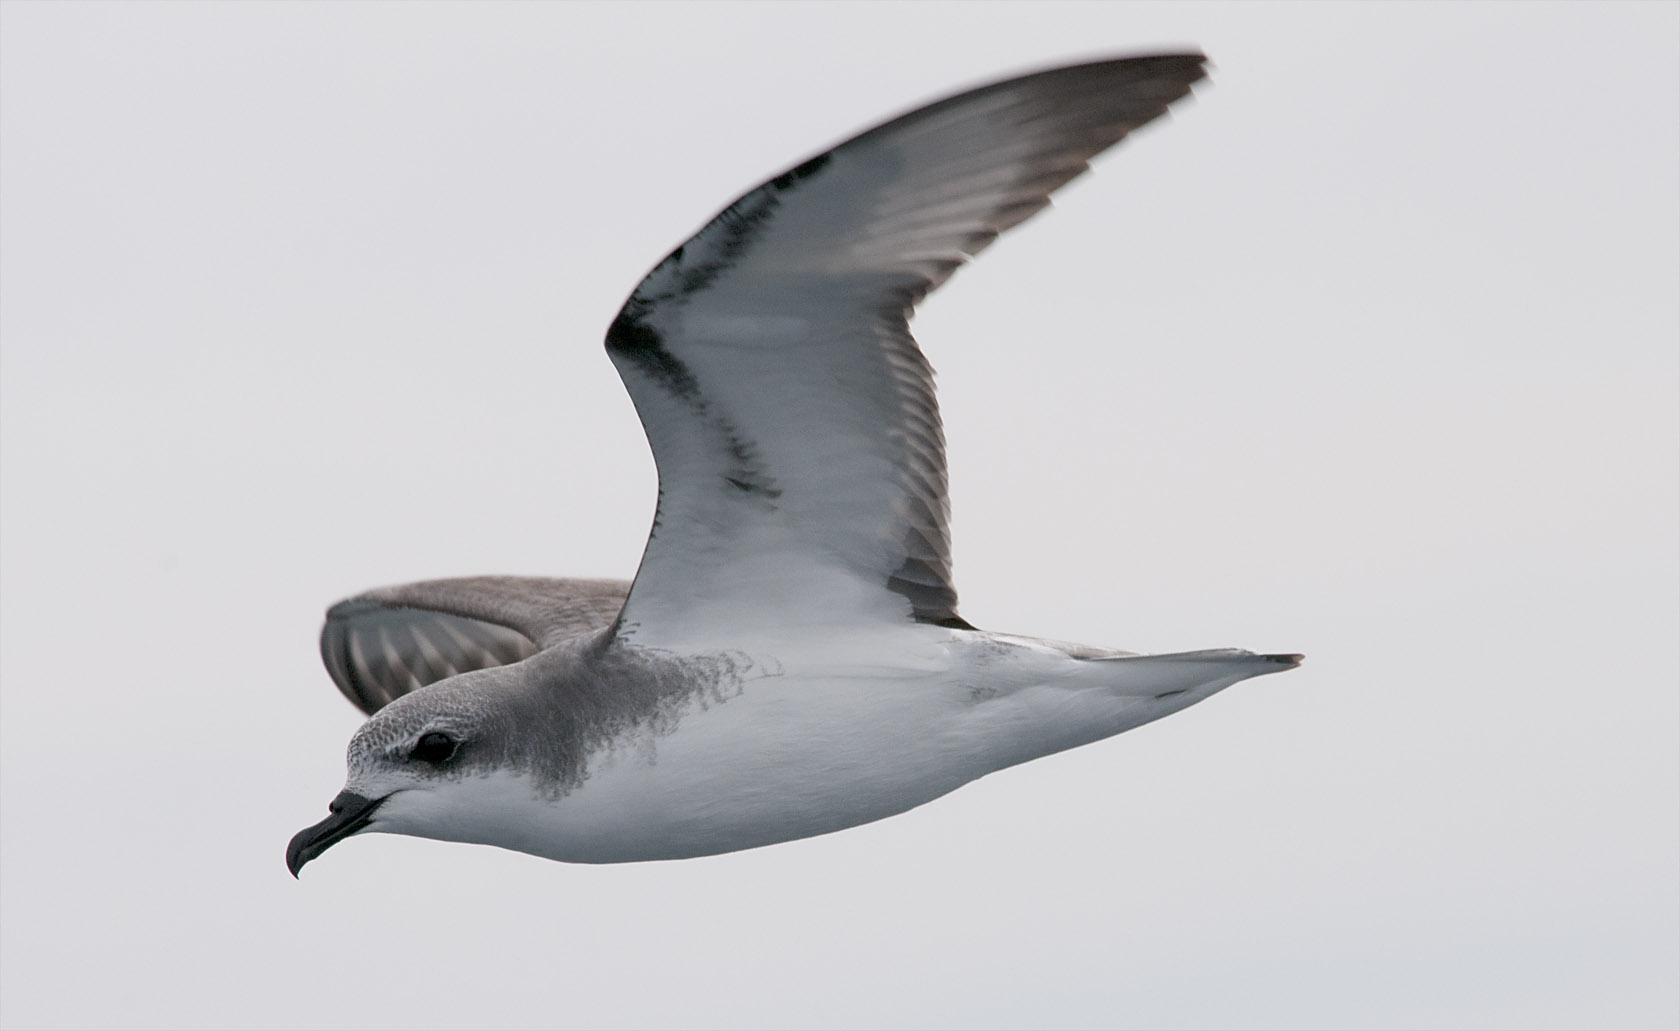 Cook's petrel. Adult in flight showing head, neck and underwing. Near  Little Barrier